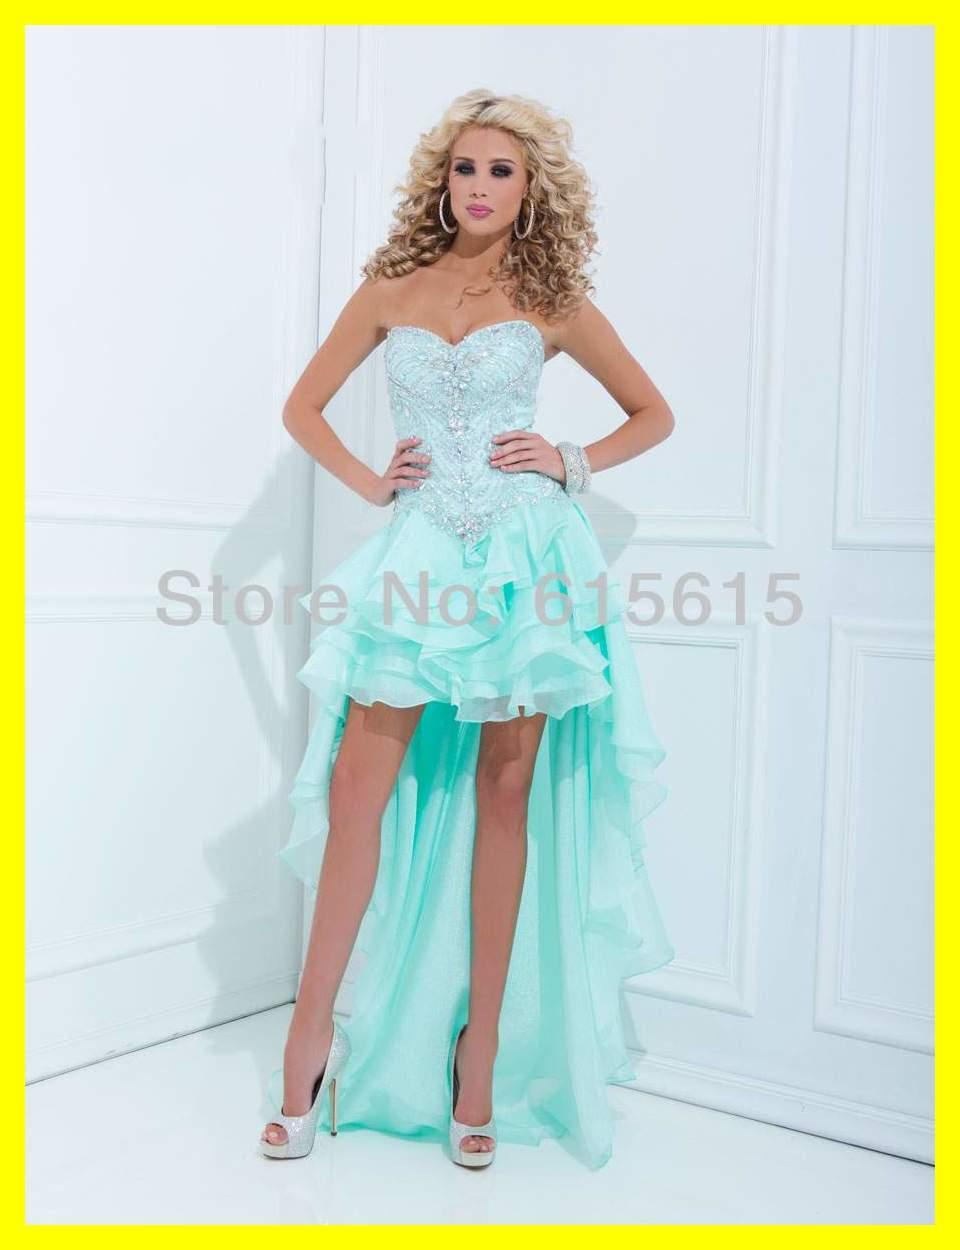 What are good stores to buy homecoming dresses